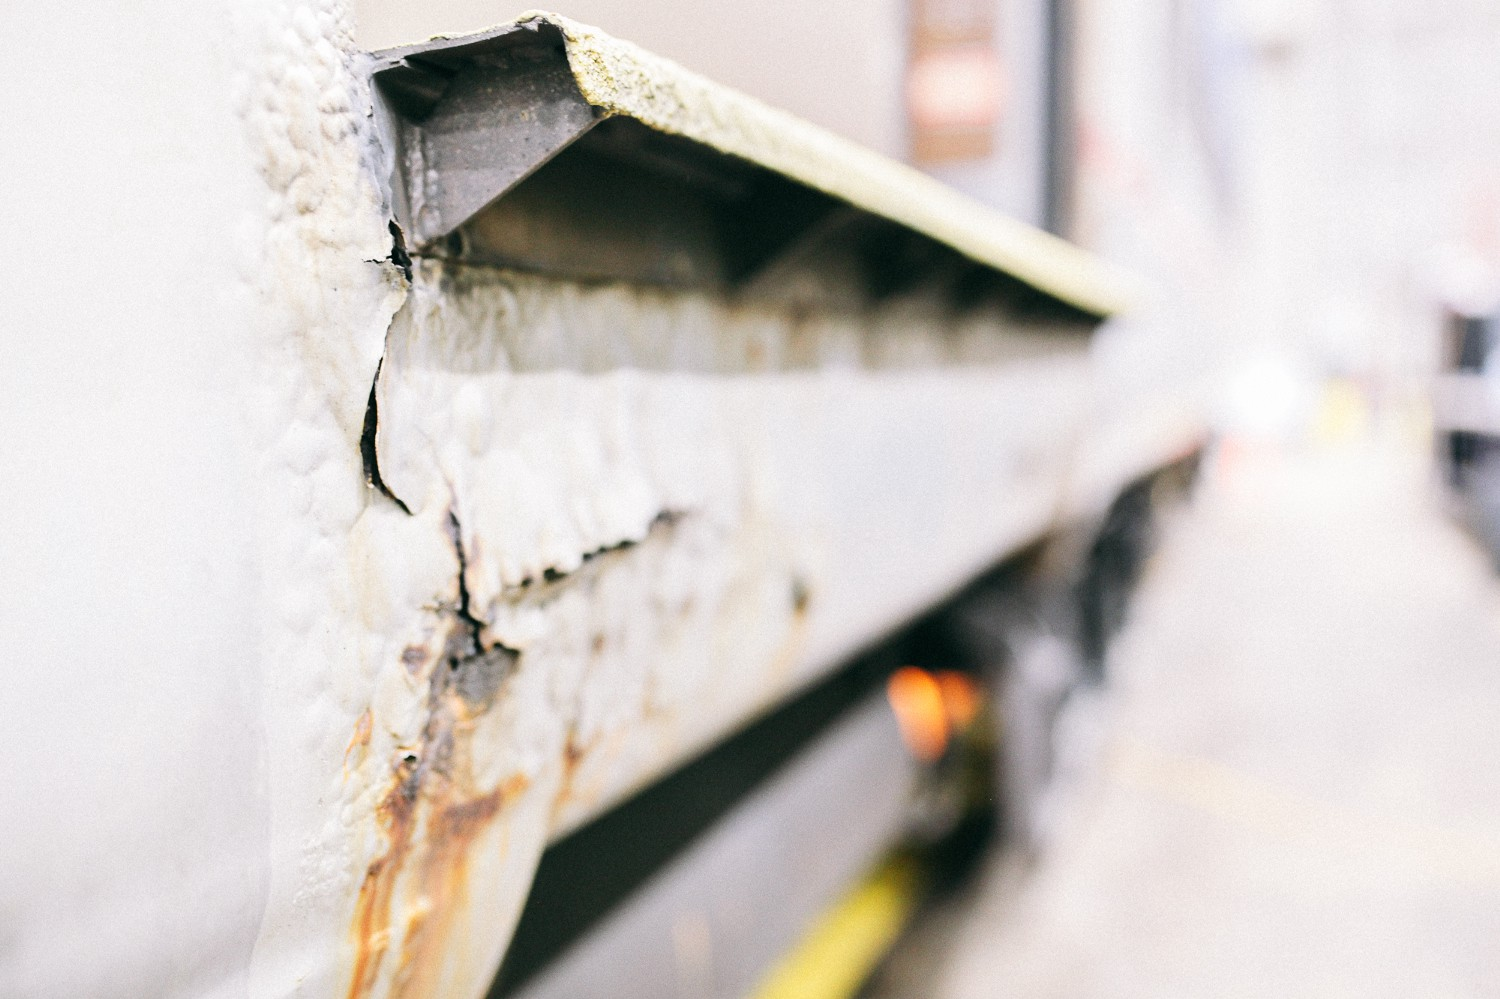 A close-up of rust on the exterior of an older railcar, which was made with carbon steel. This car was built in 1972. Modern cars are made with more durable stainless steel.